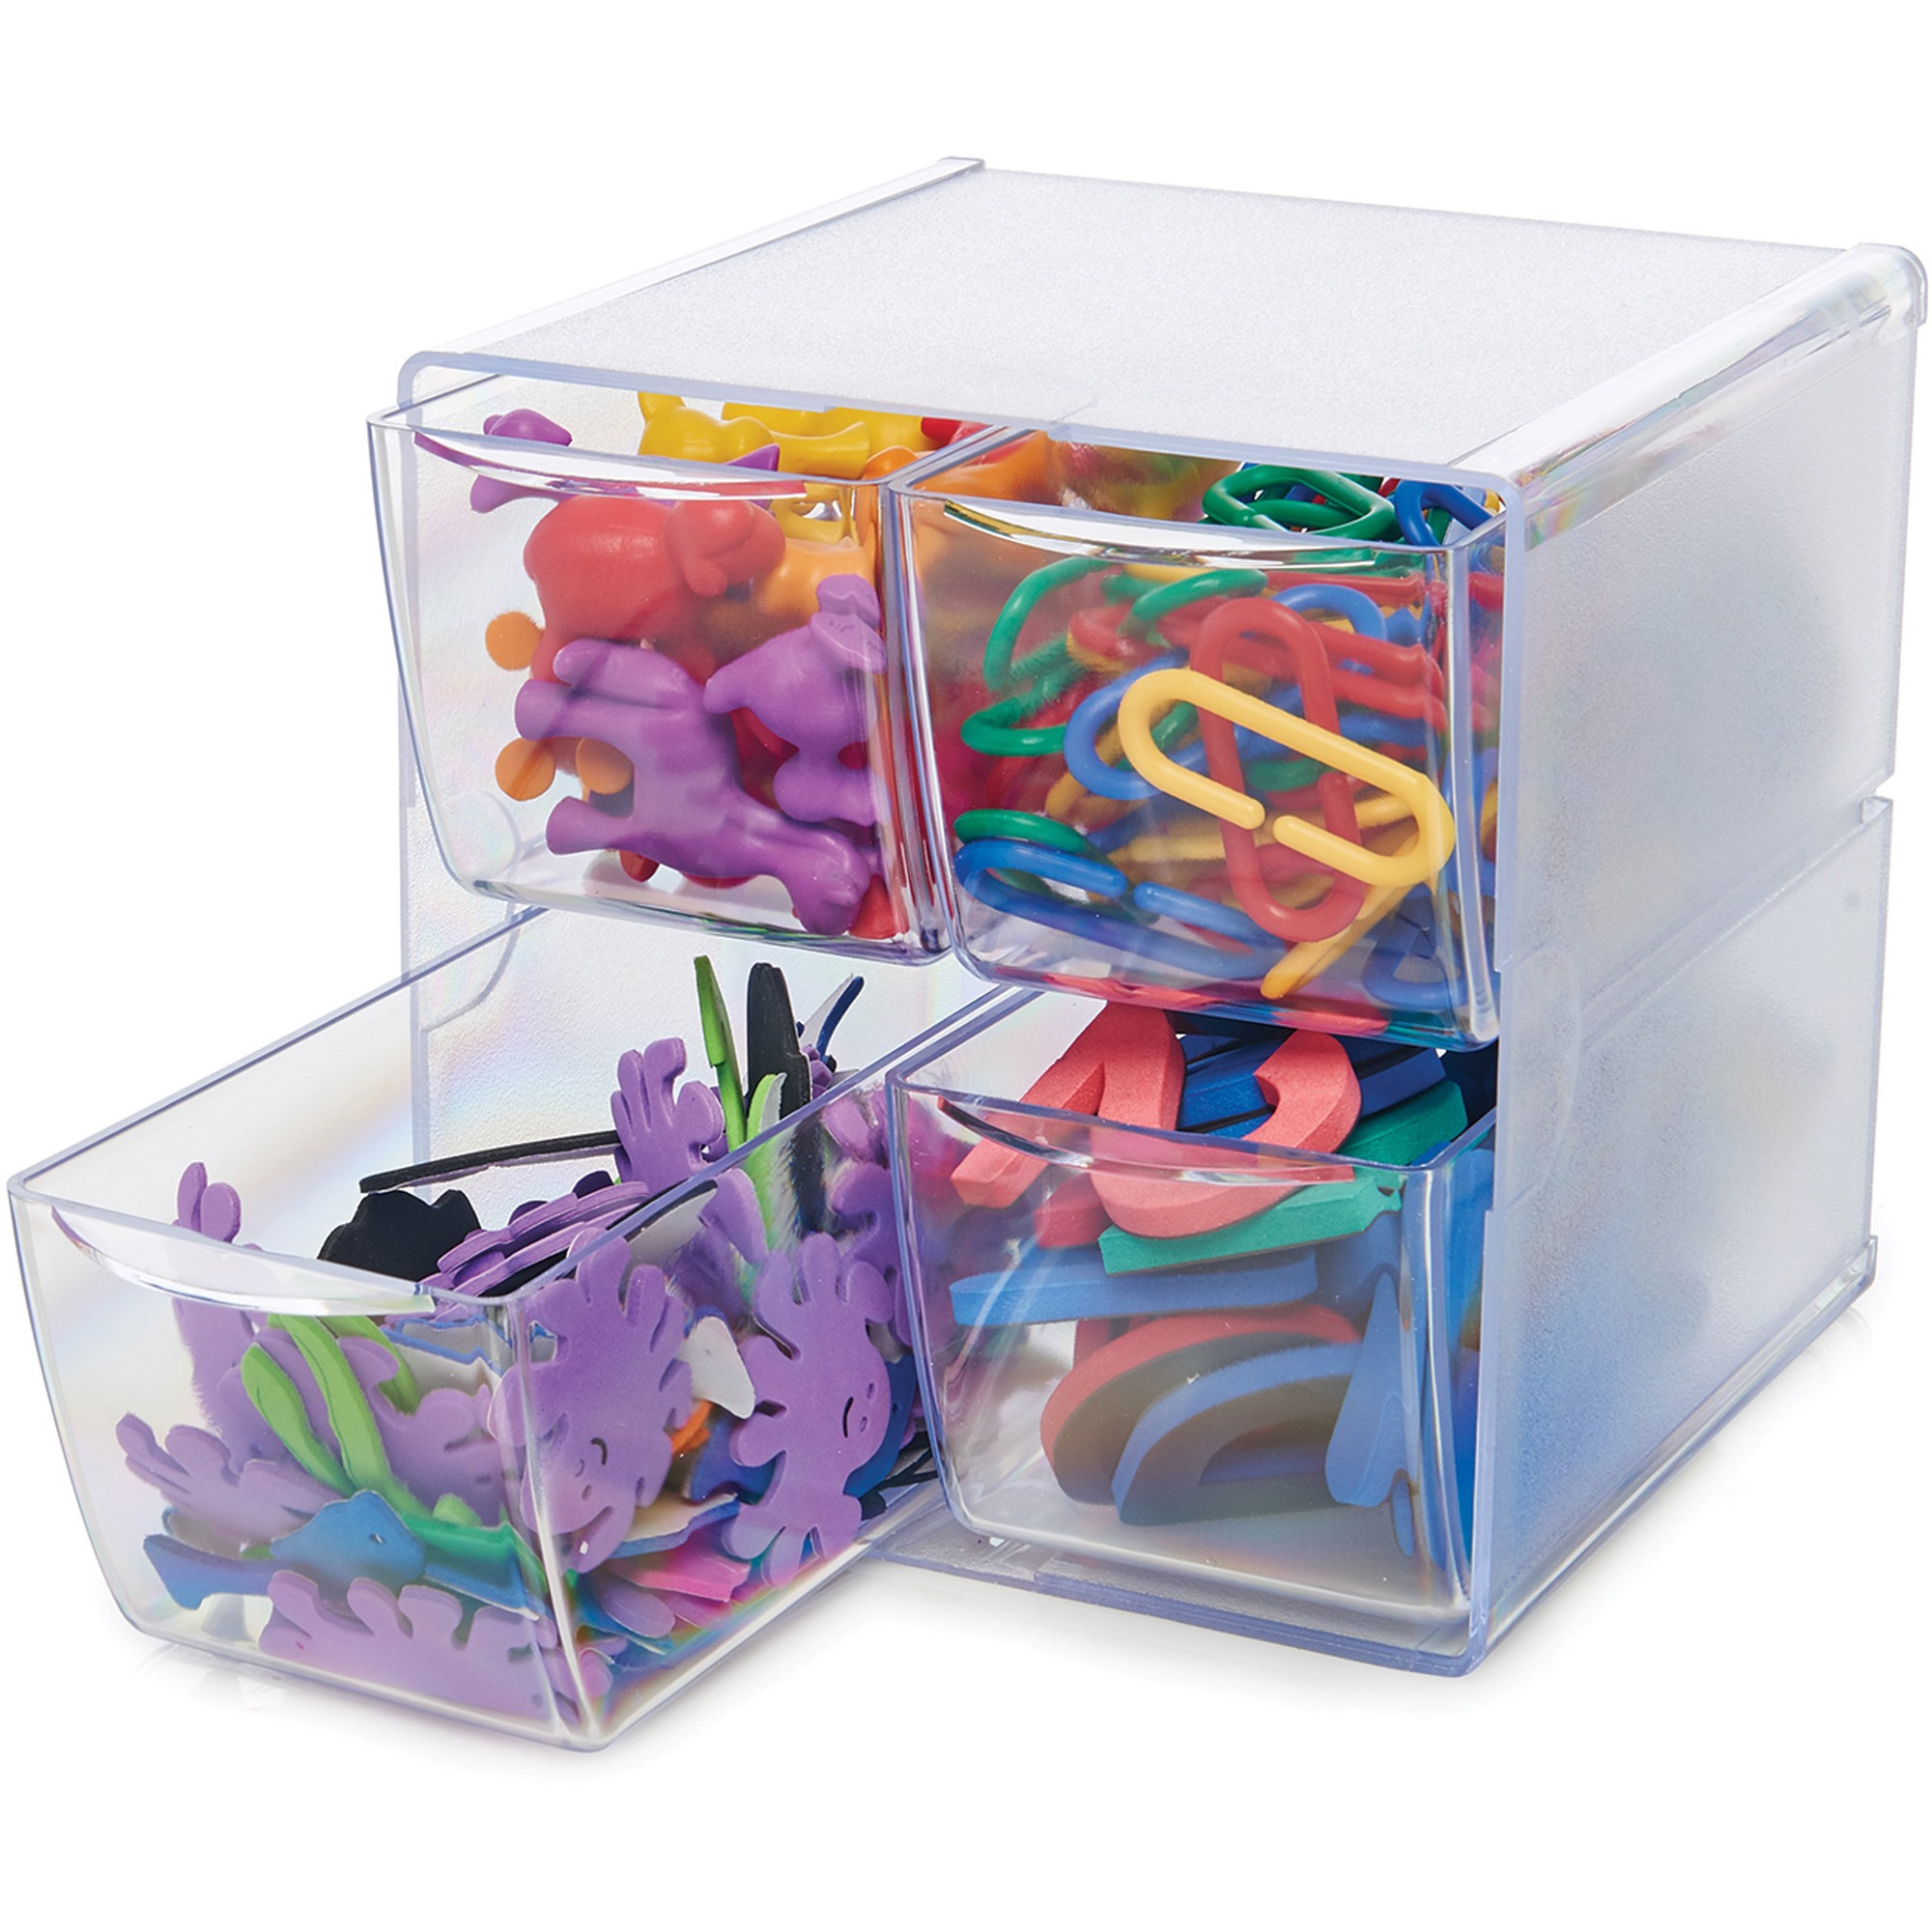 deflecto Desk Cube, with Four Drawers, Clear Plastic, 6 x 7-1/8 x 6